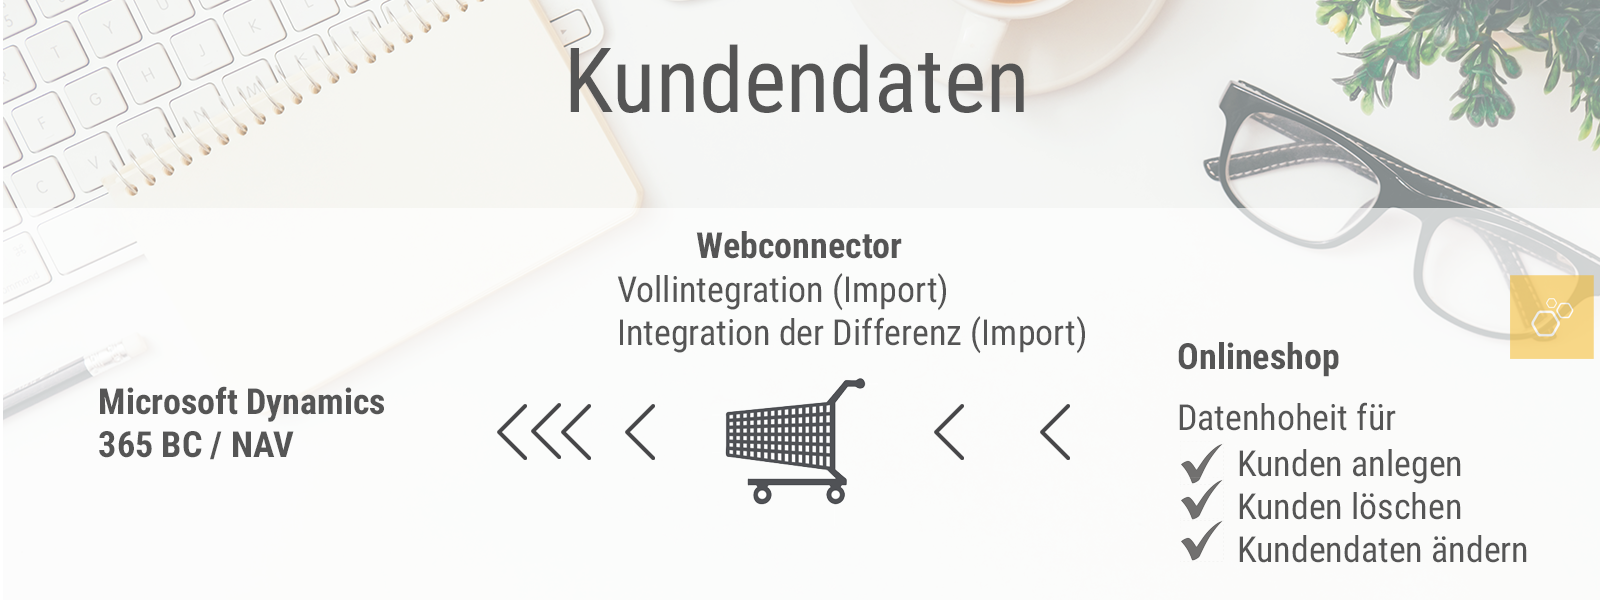 Webconnector-Kundendaten